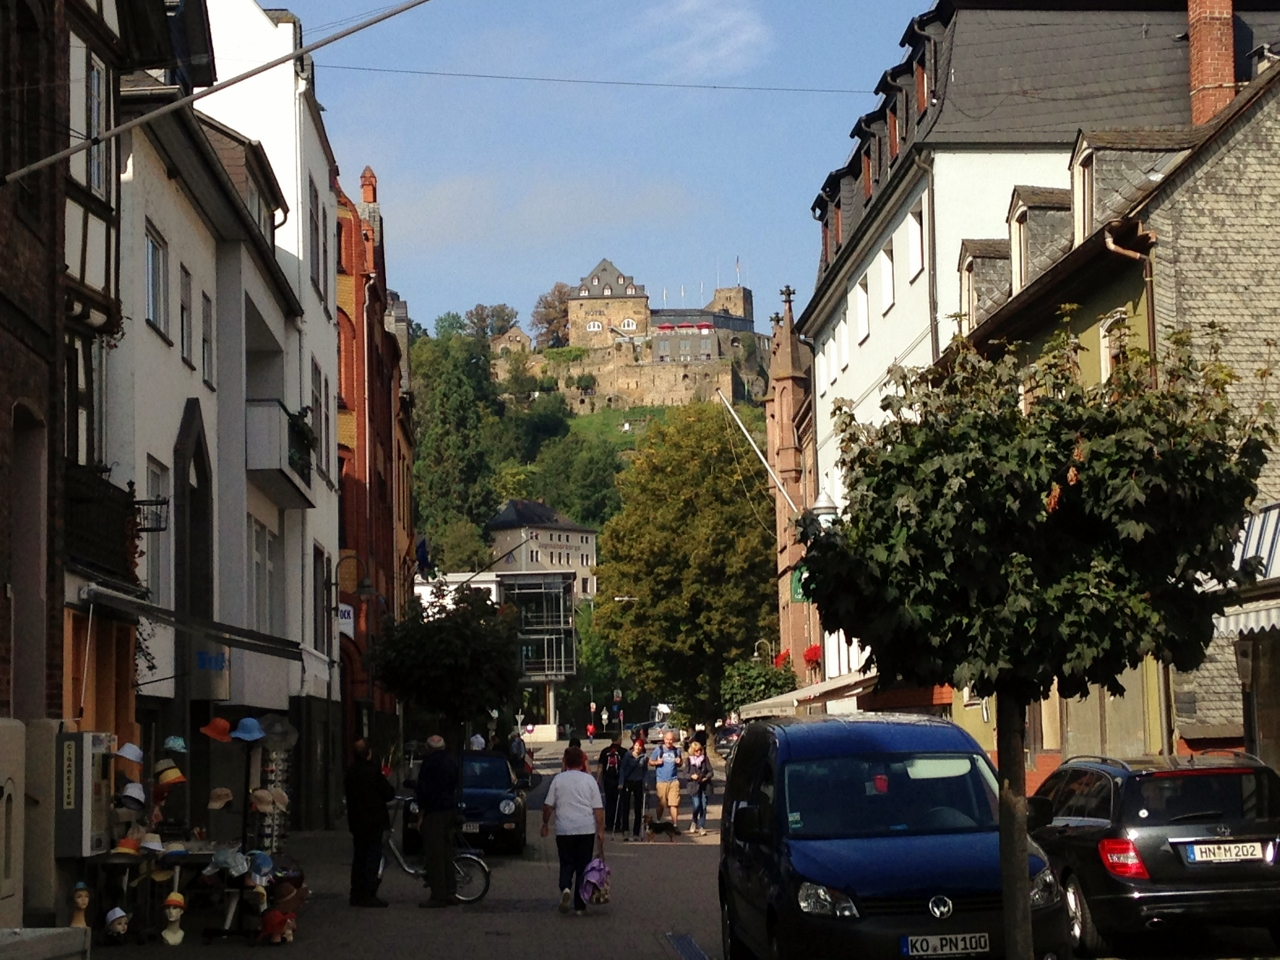 The view from St. Goar, Germany.